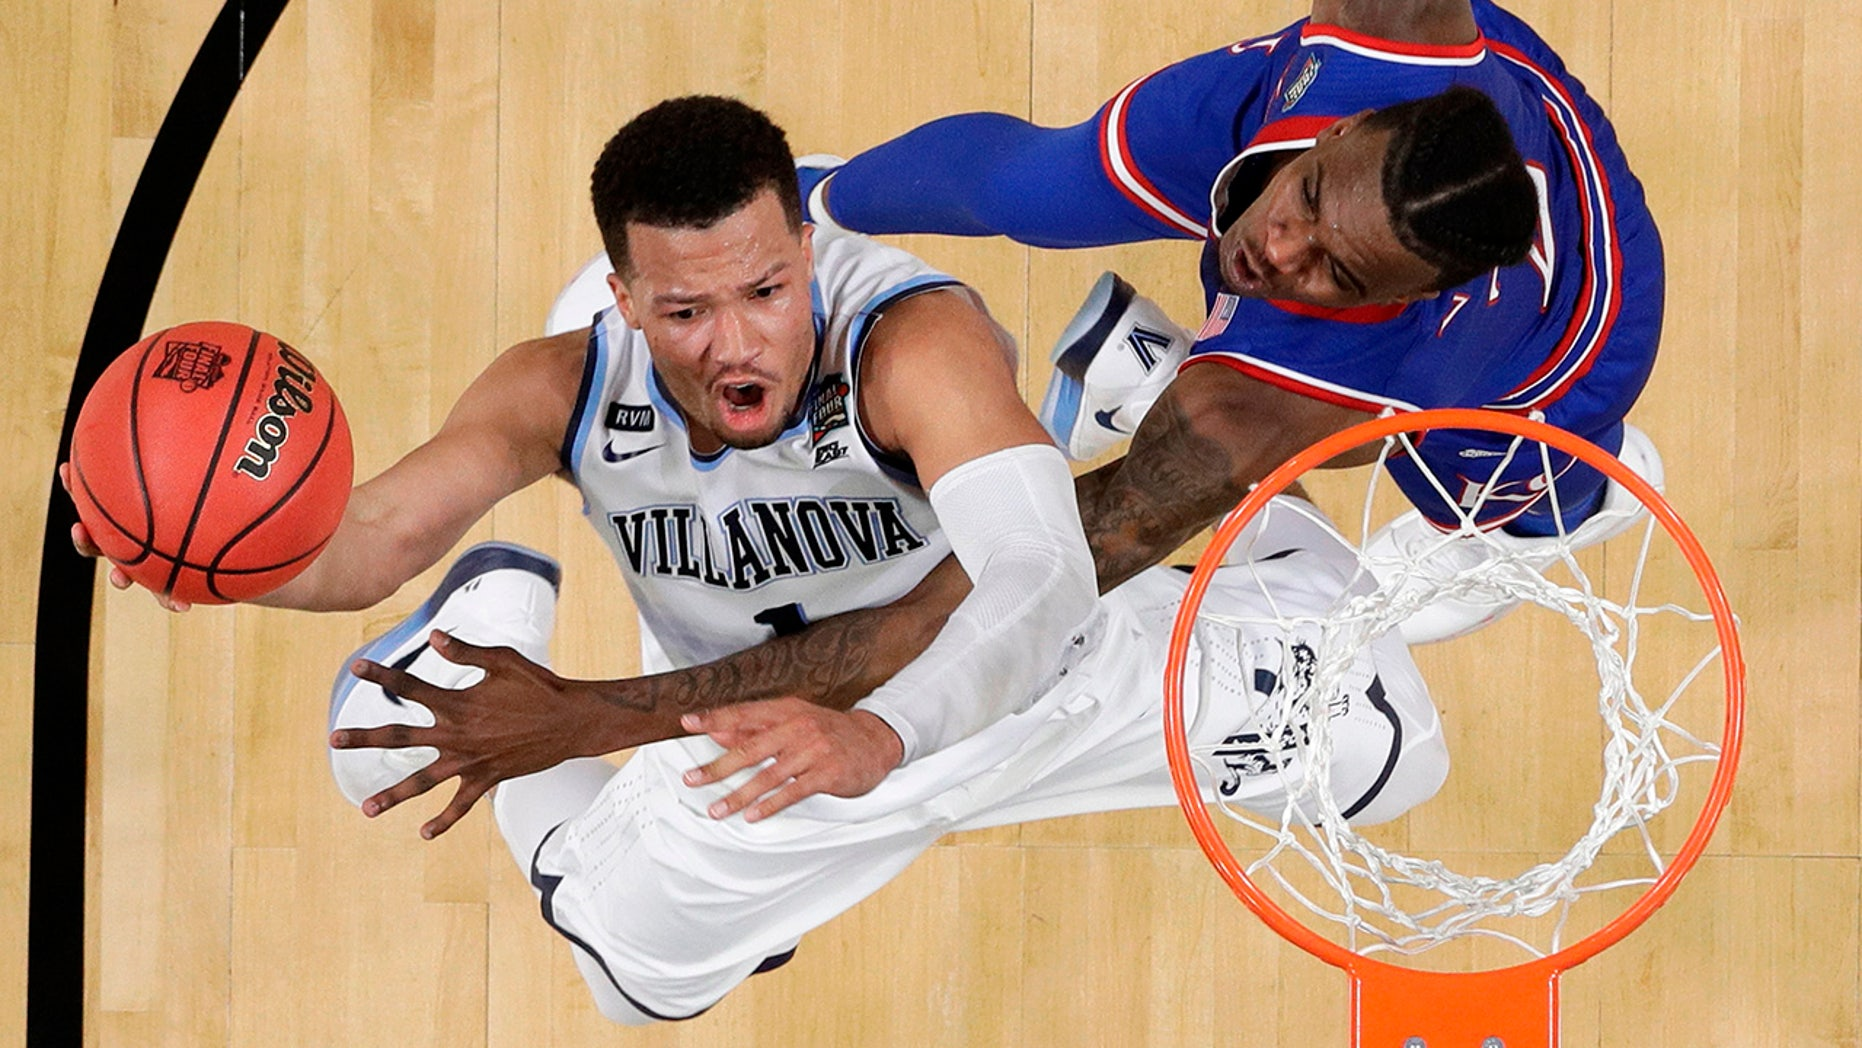 Villanova's Jalen Brunson (1) shoots over Kansas's Lagerald Vick (2) during the second half in the semifinals of the Final Four NCAA college basketball tournament, Saturday, March 31, 2018, in San Antonio.